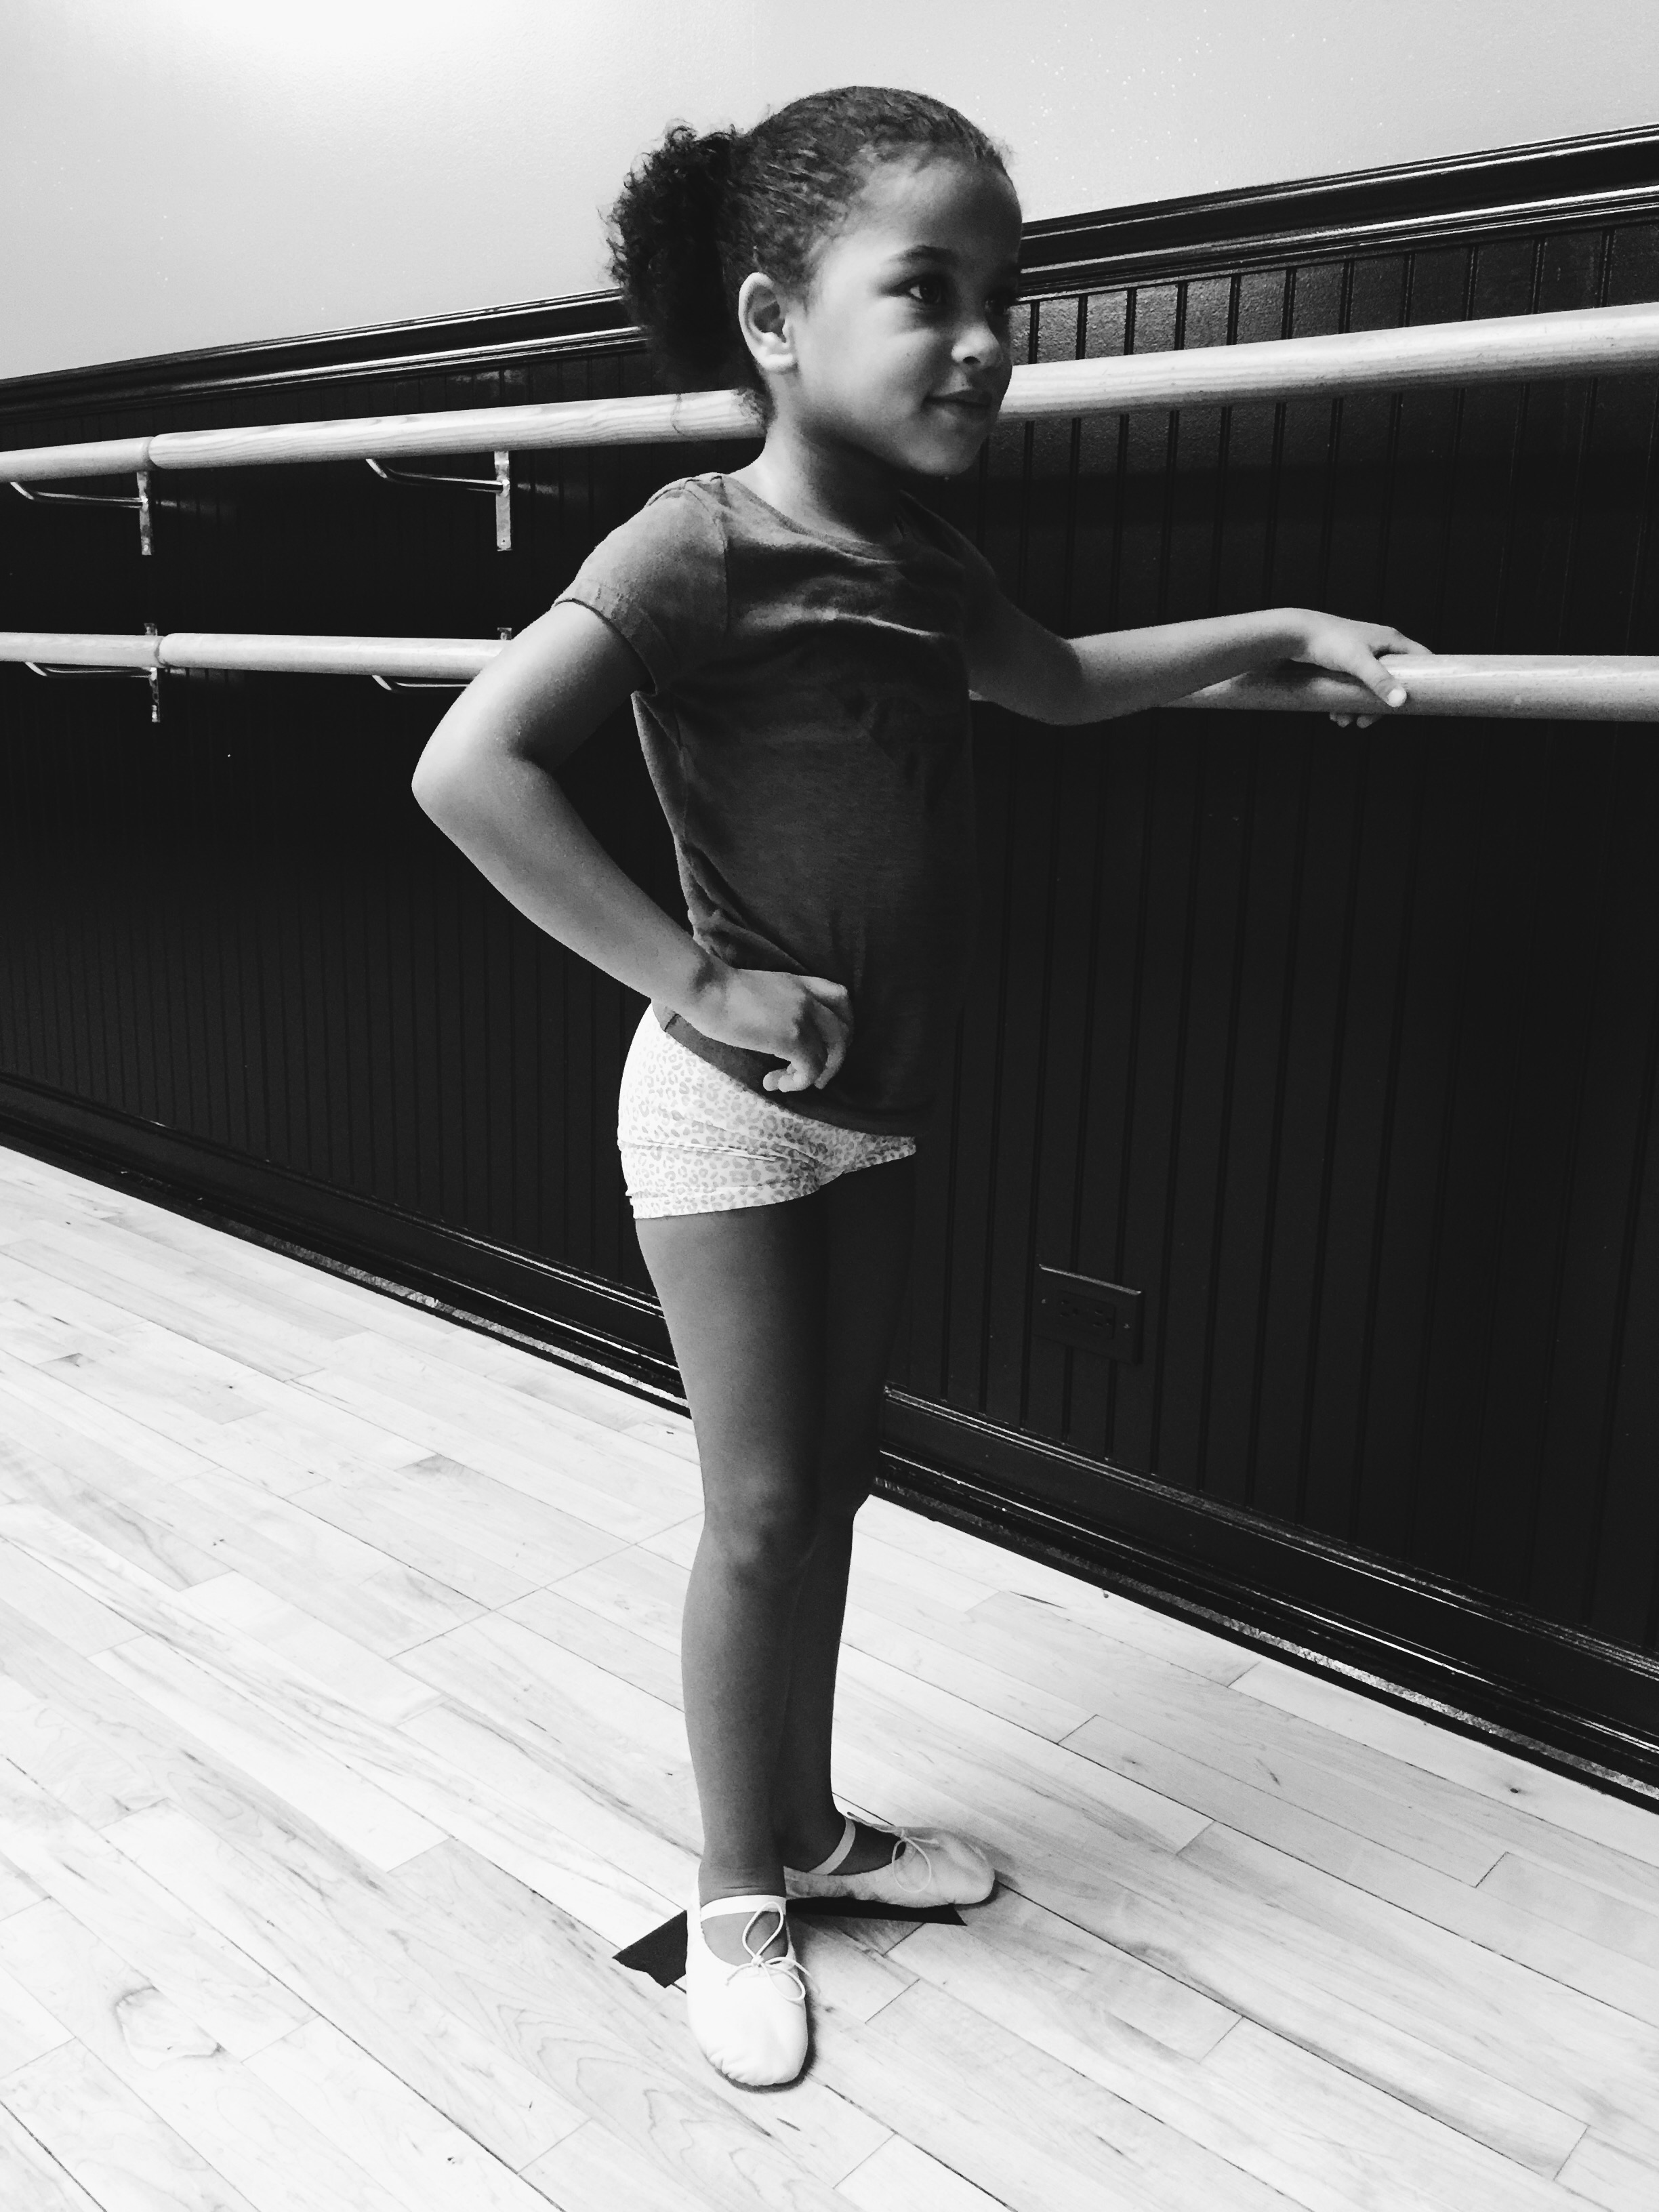 Kaydence learning relevé, plié, and first position.